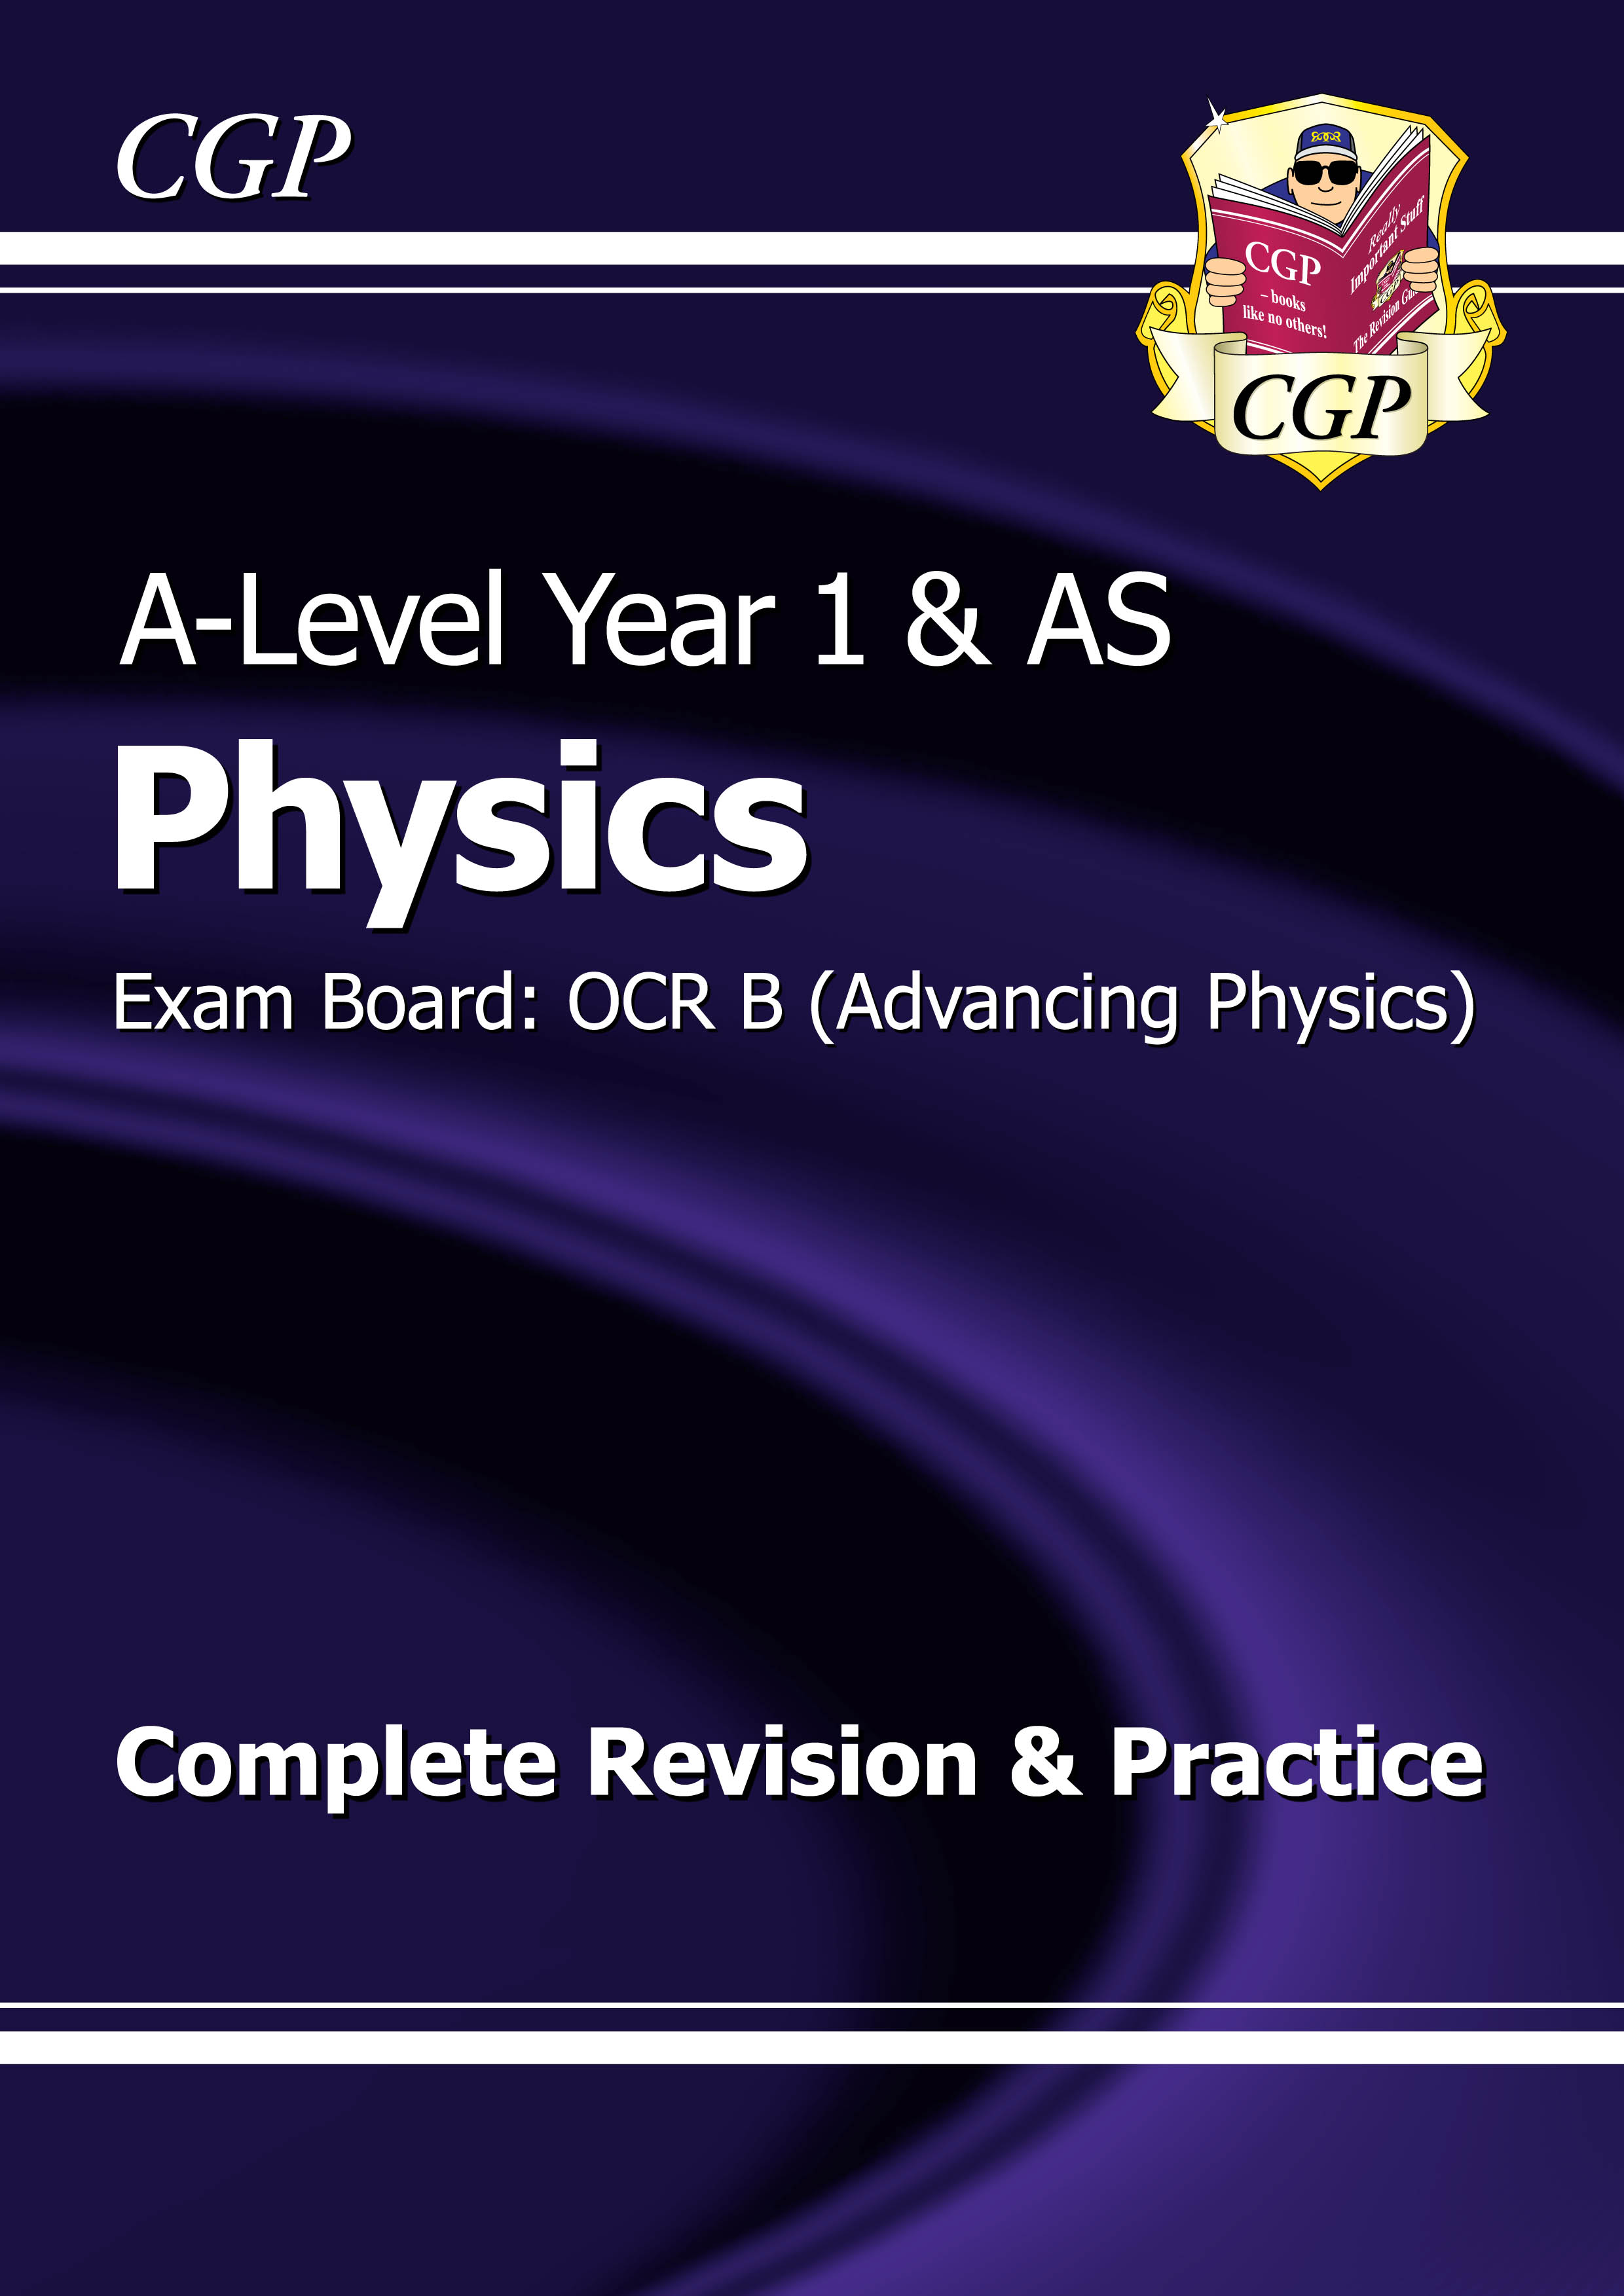 PRBR53DK - A-Level Physics: OCR B Year 1 & AS Complete Revision & Practice